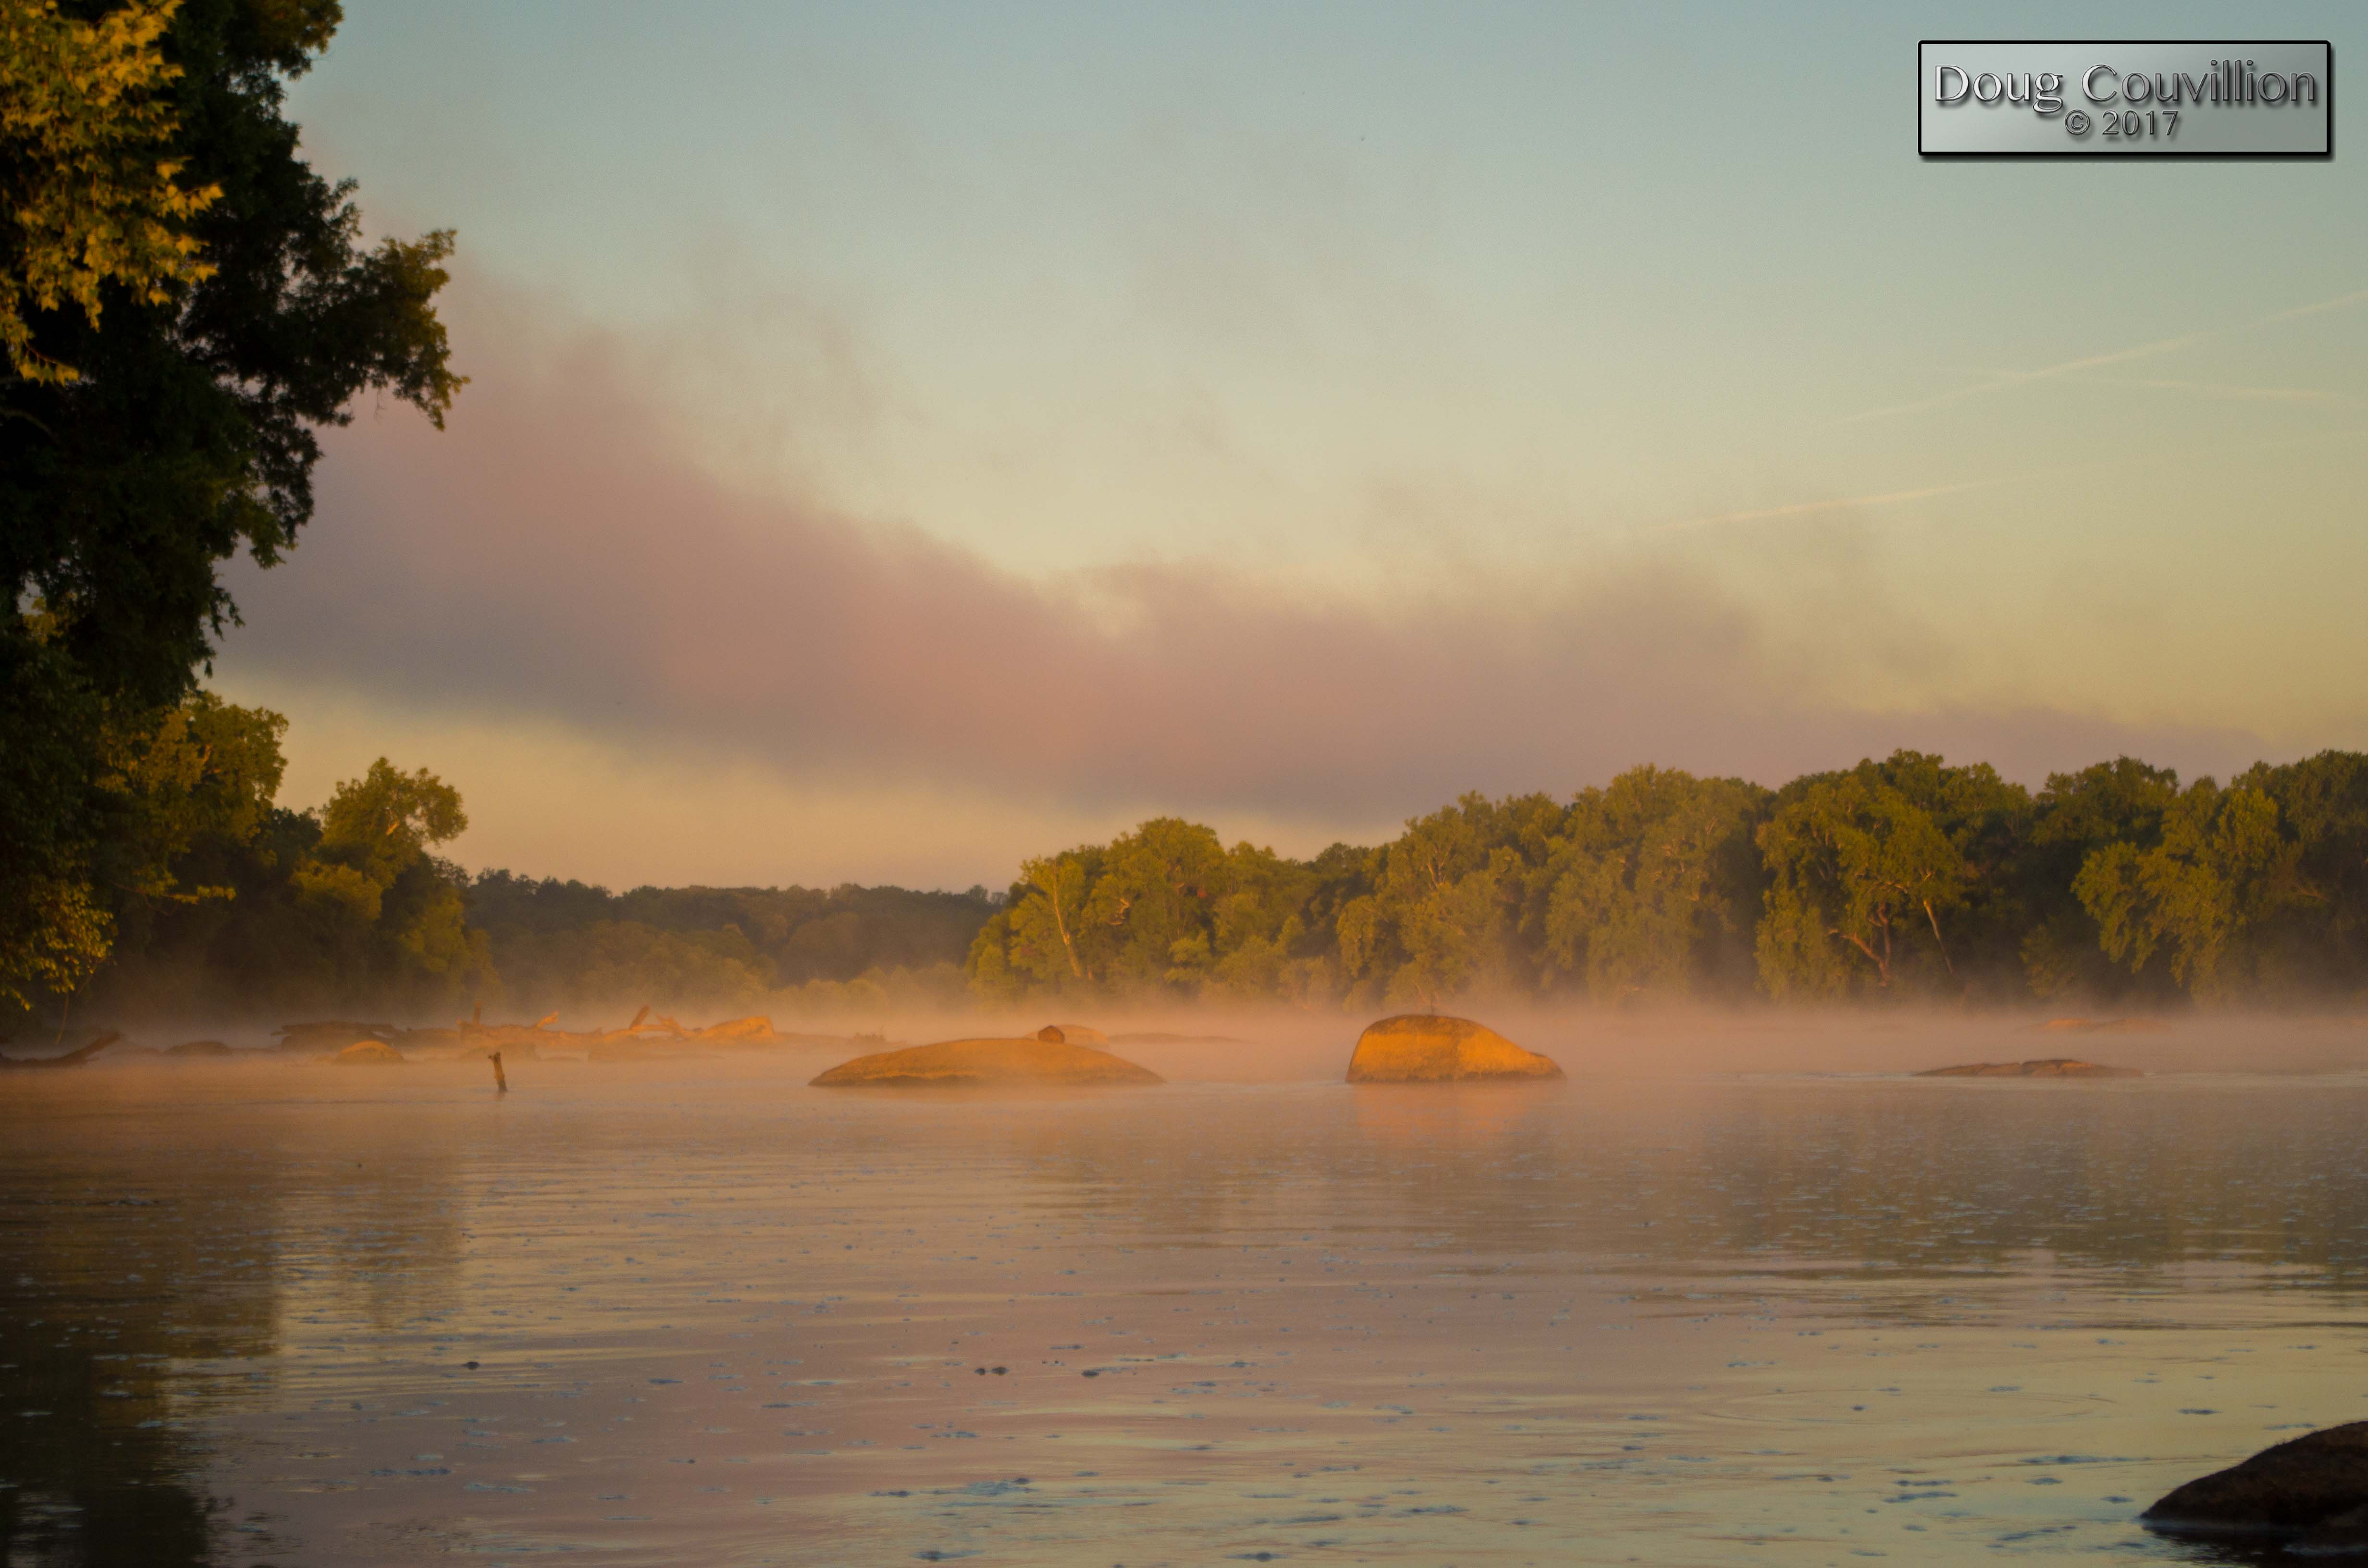 Photograph of morning mist over the James River by Doug Couvillion